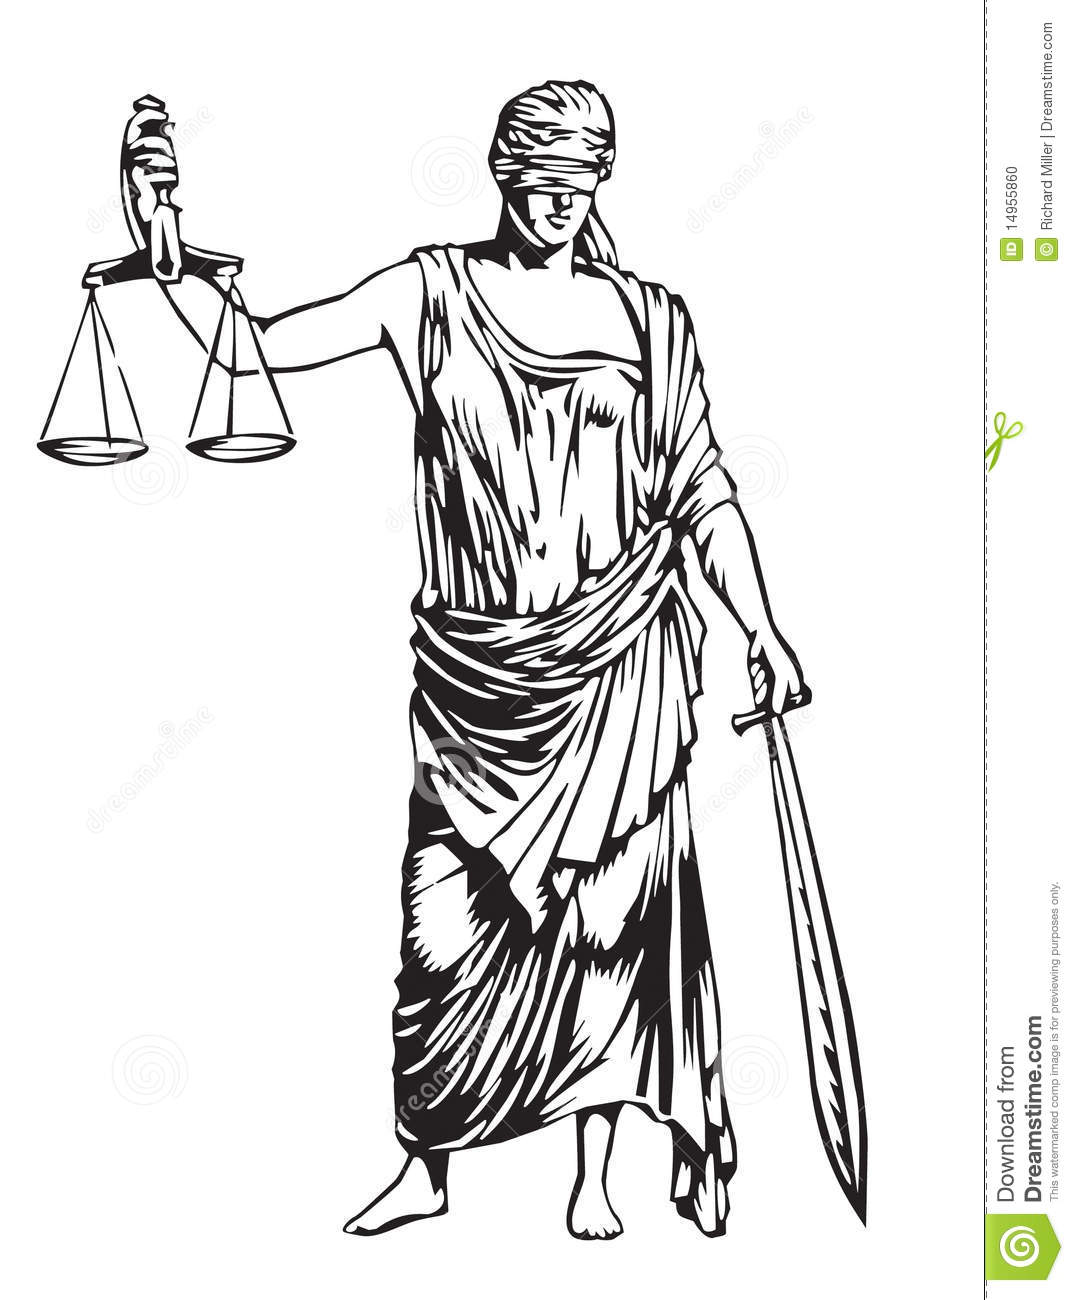 Blind justice stock vector. Illustration of scales, toga ...